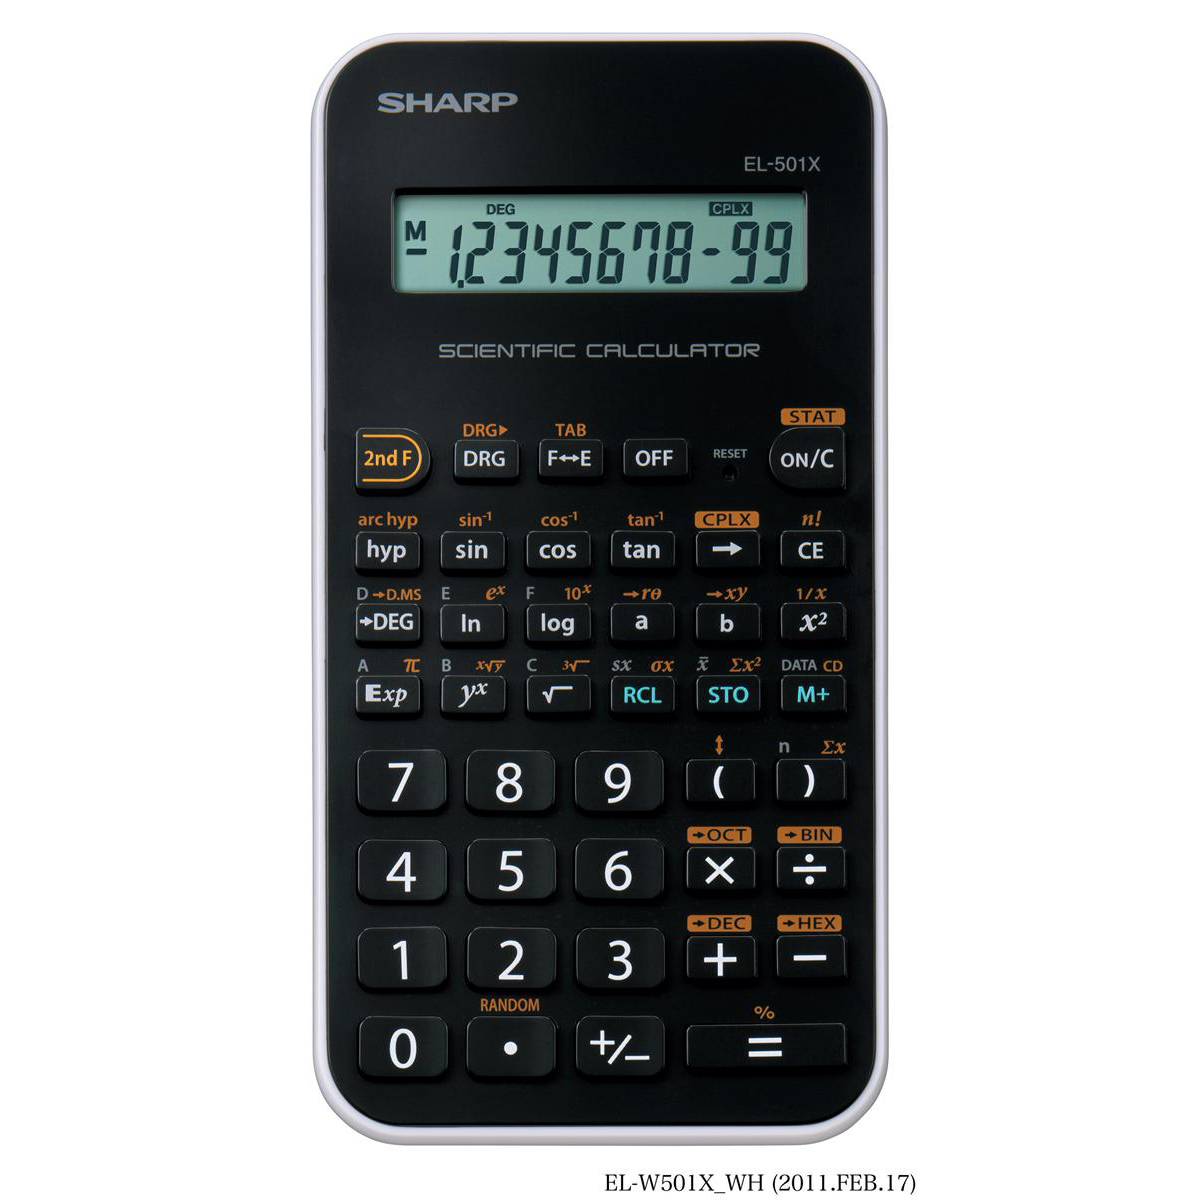 Scientific Calculator Sharp Junior Handheld Scientific Calculator 10 Digit Battery Power 75x10x144mm Black Ref EL-501X